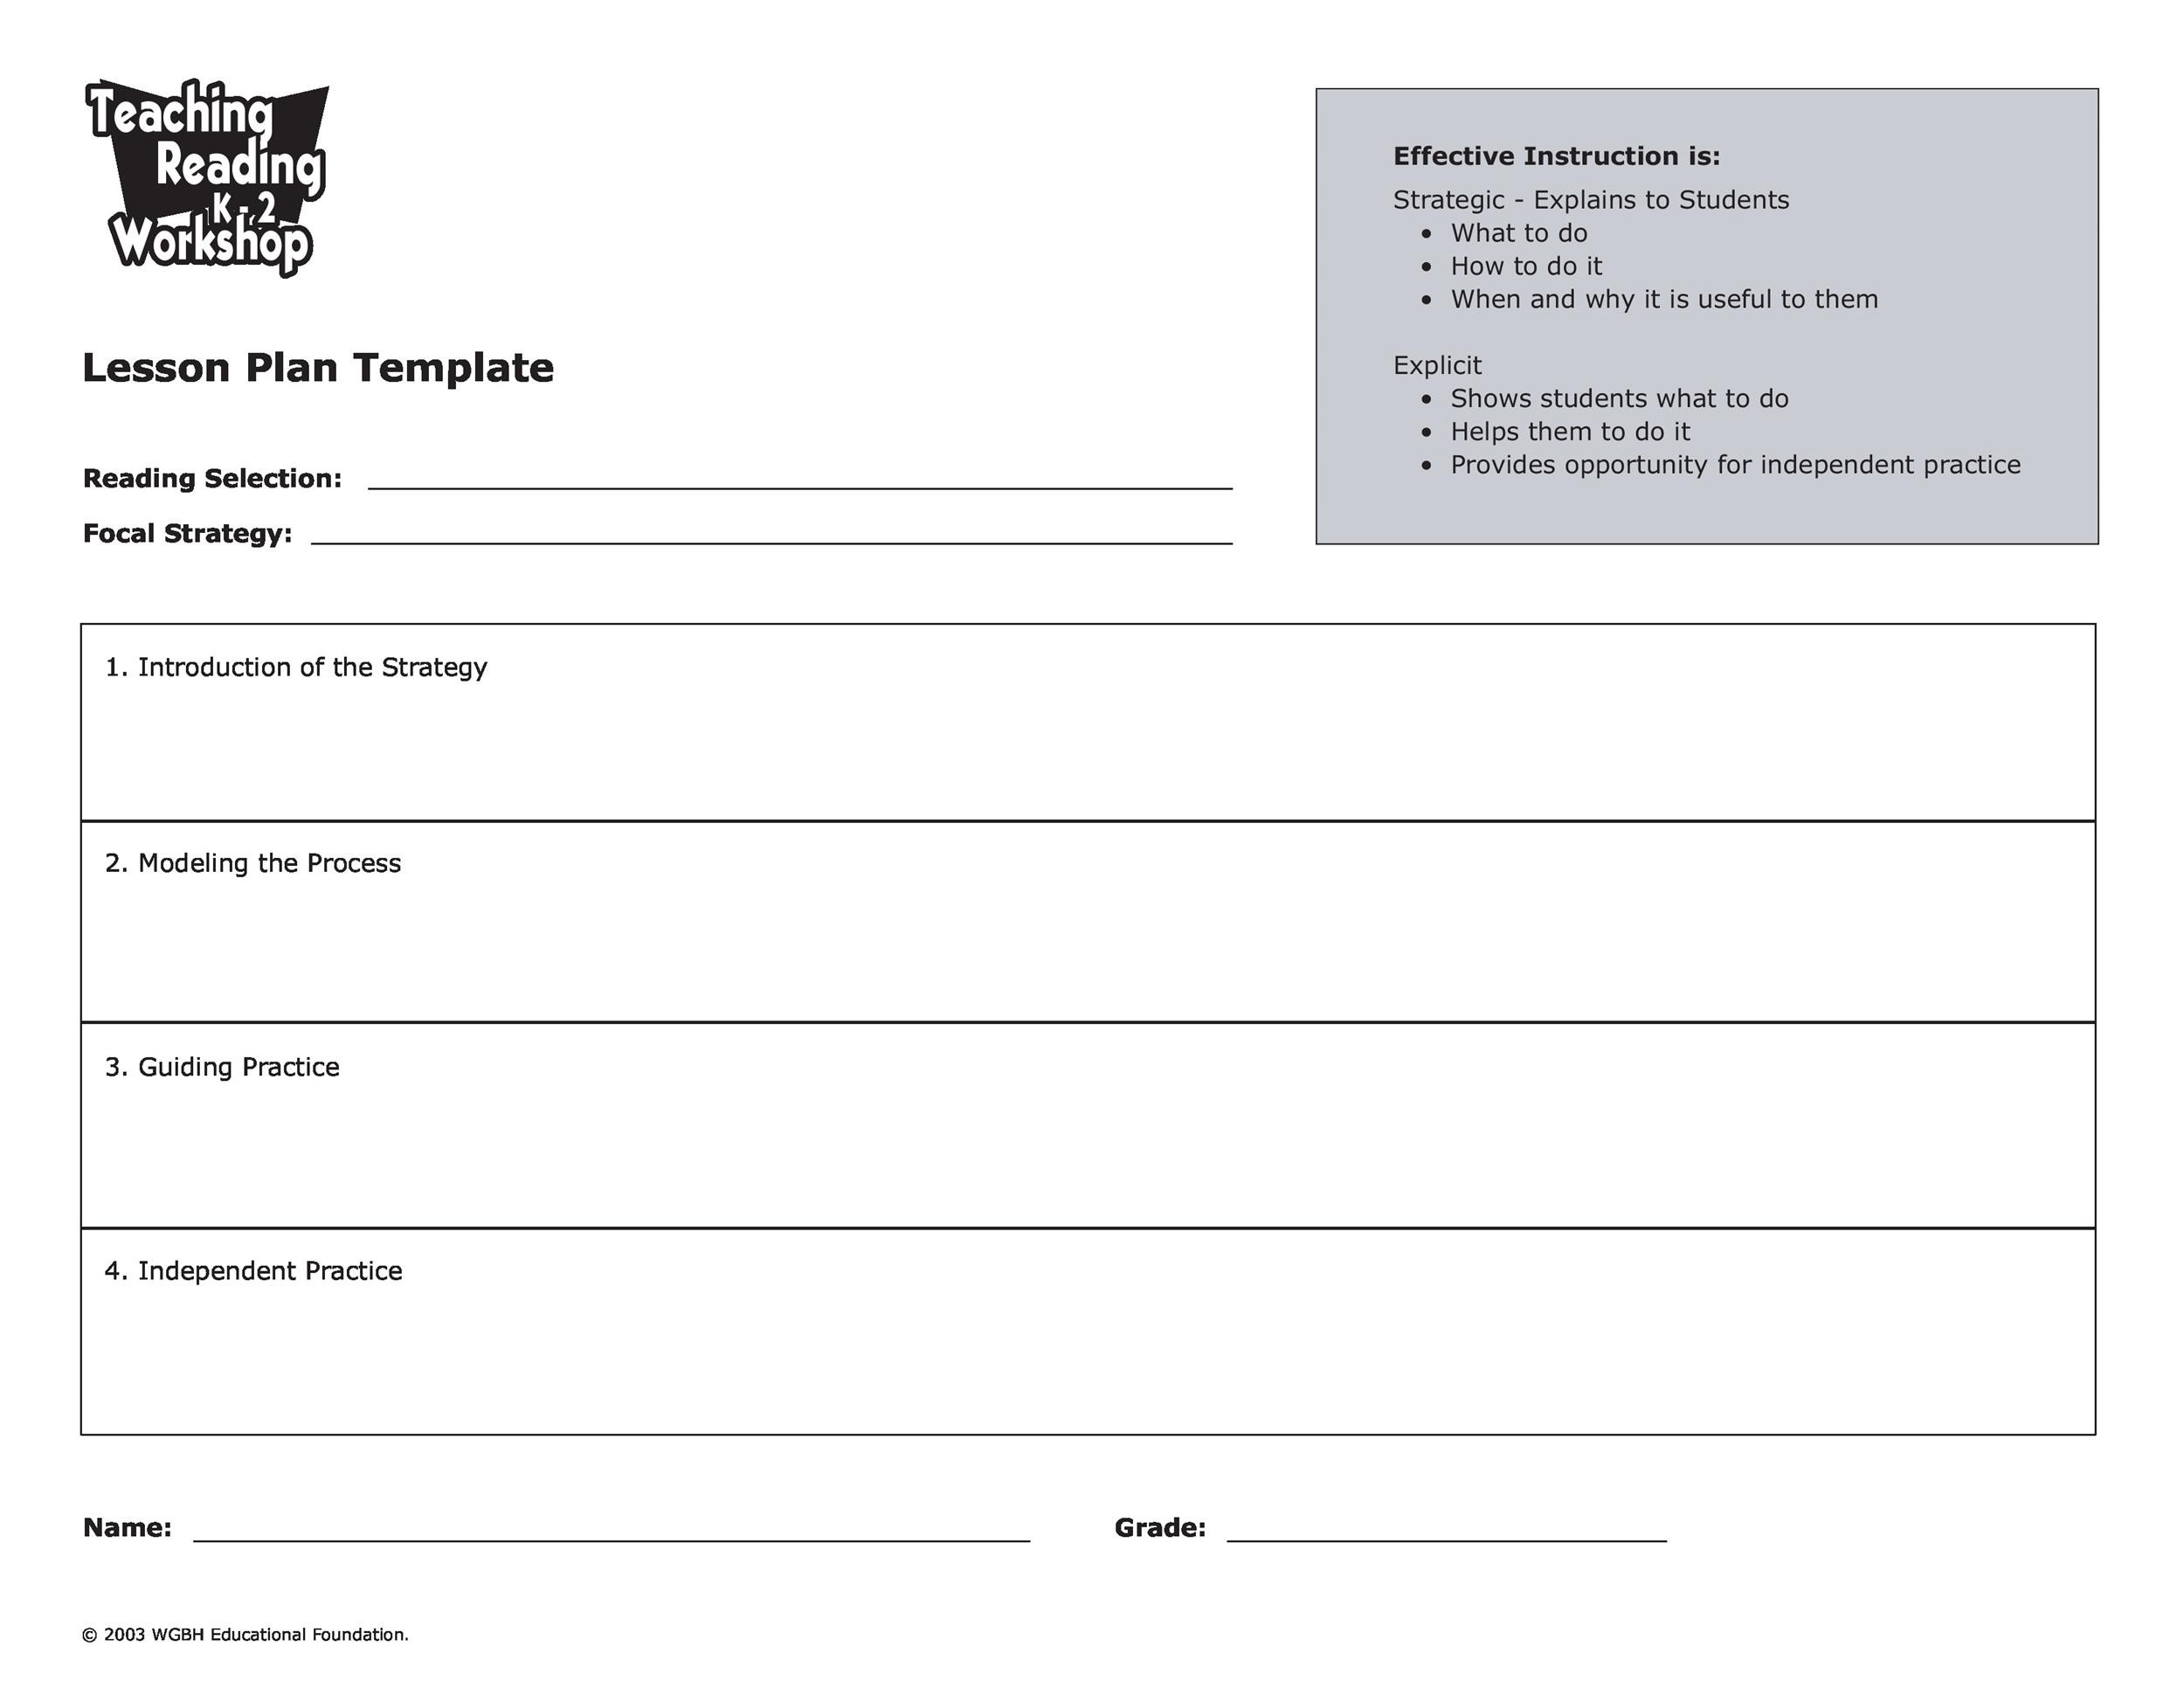 Free lesson plan template 24